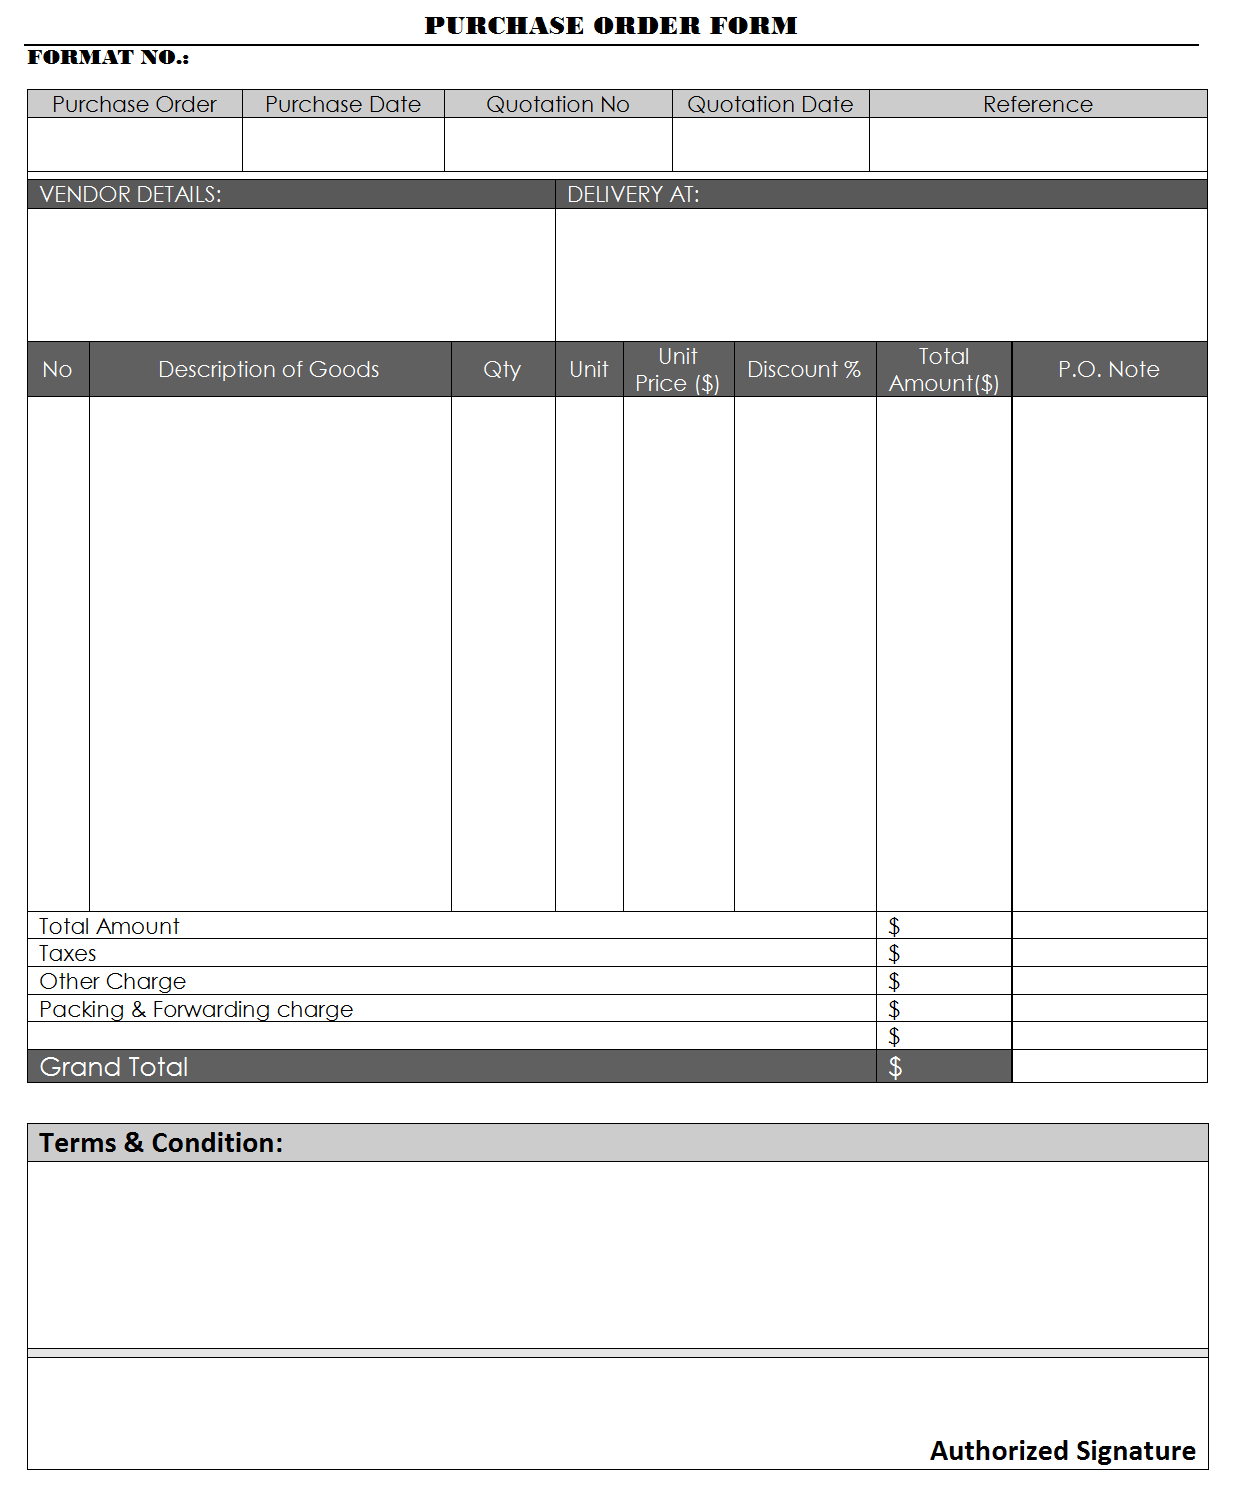 Purchase Order Form  Purchase Order Form Template Pdf